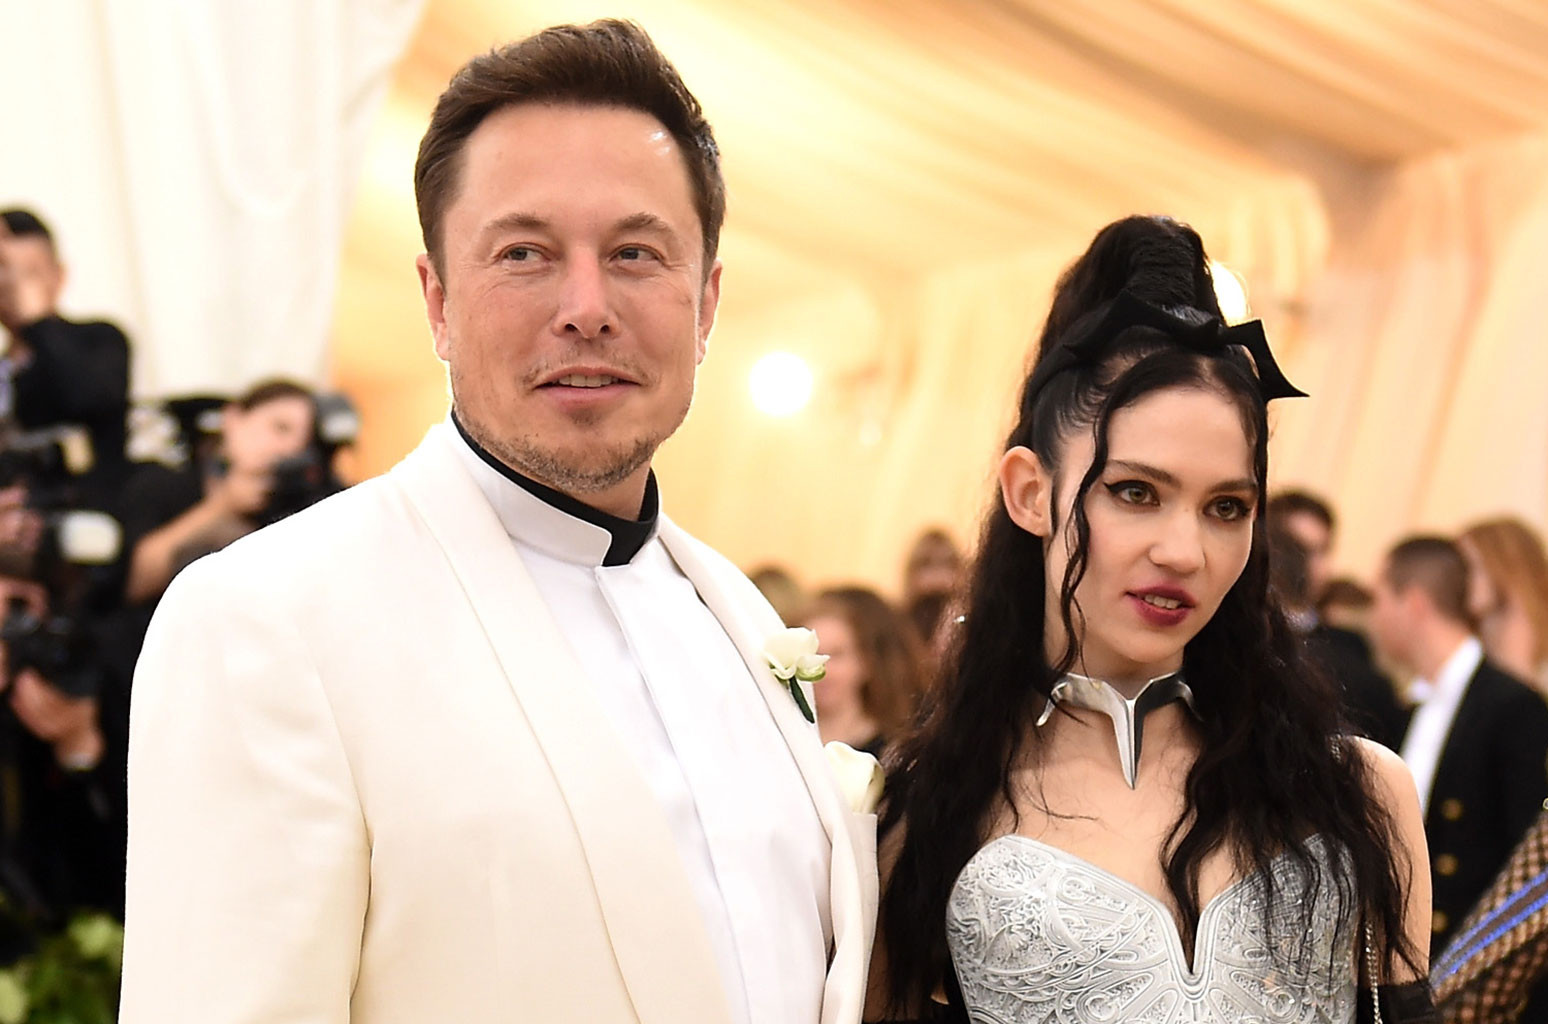 Grimes and Elon Musk Share Adorable New Photos With Son X Æ A-XII - Billboard